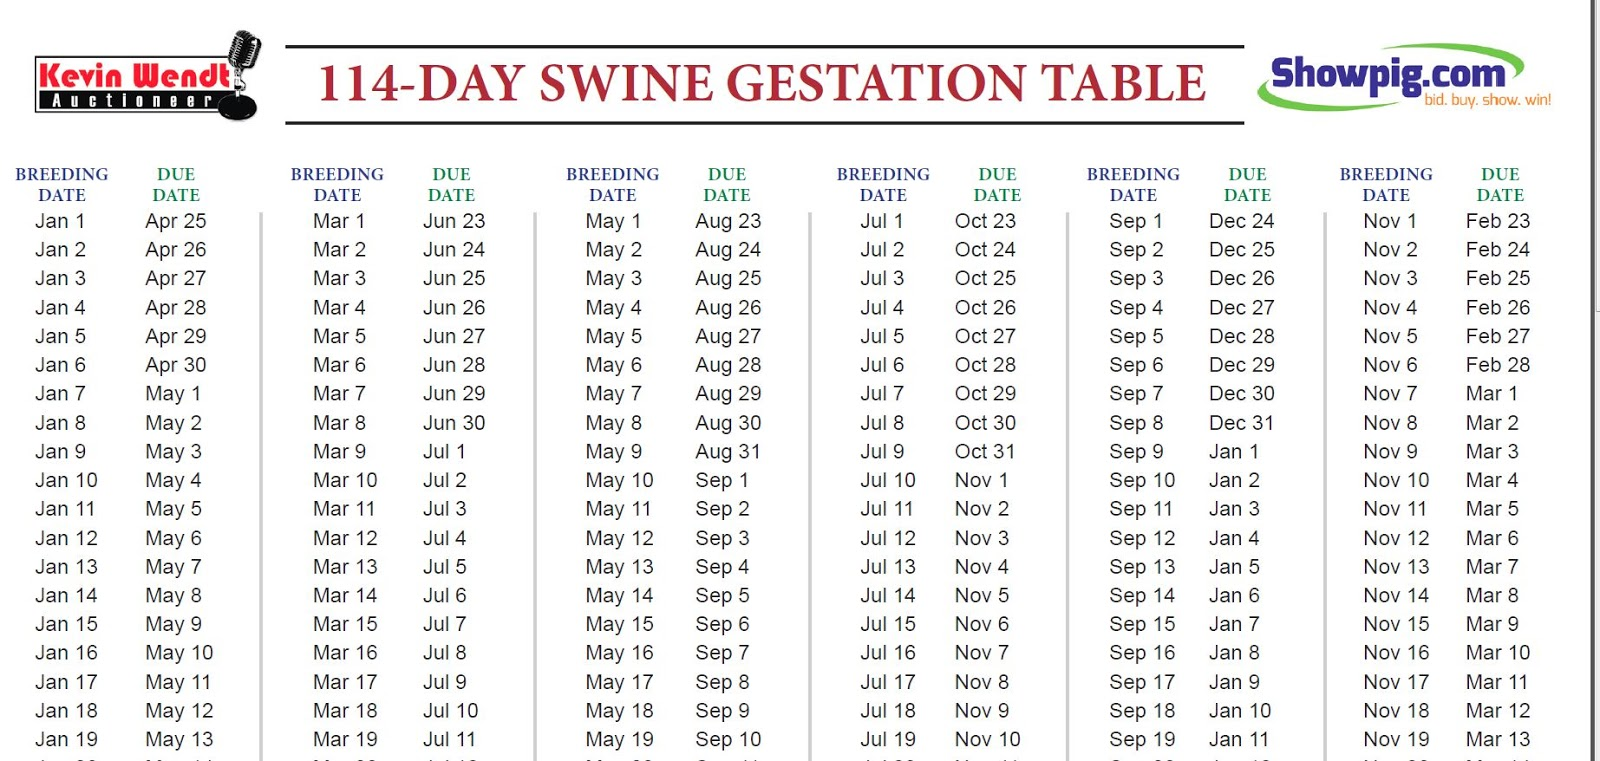 According To Two Separate Swine Gestation Tables That I Ve Ed My Pc Our Pig Should Be Delivering This Coming Monday The Breeder S Record Show